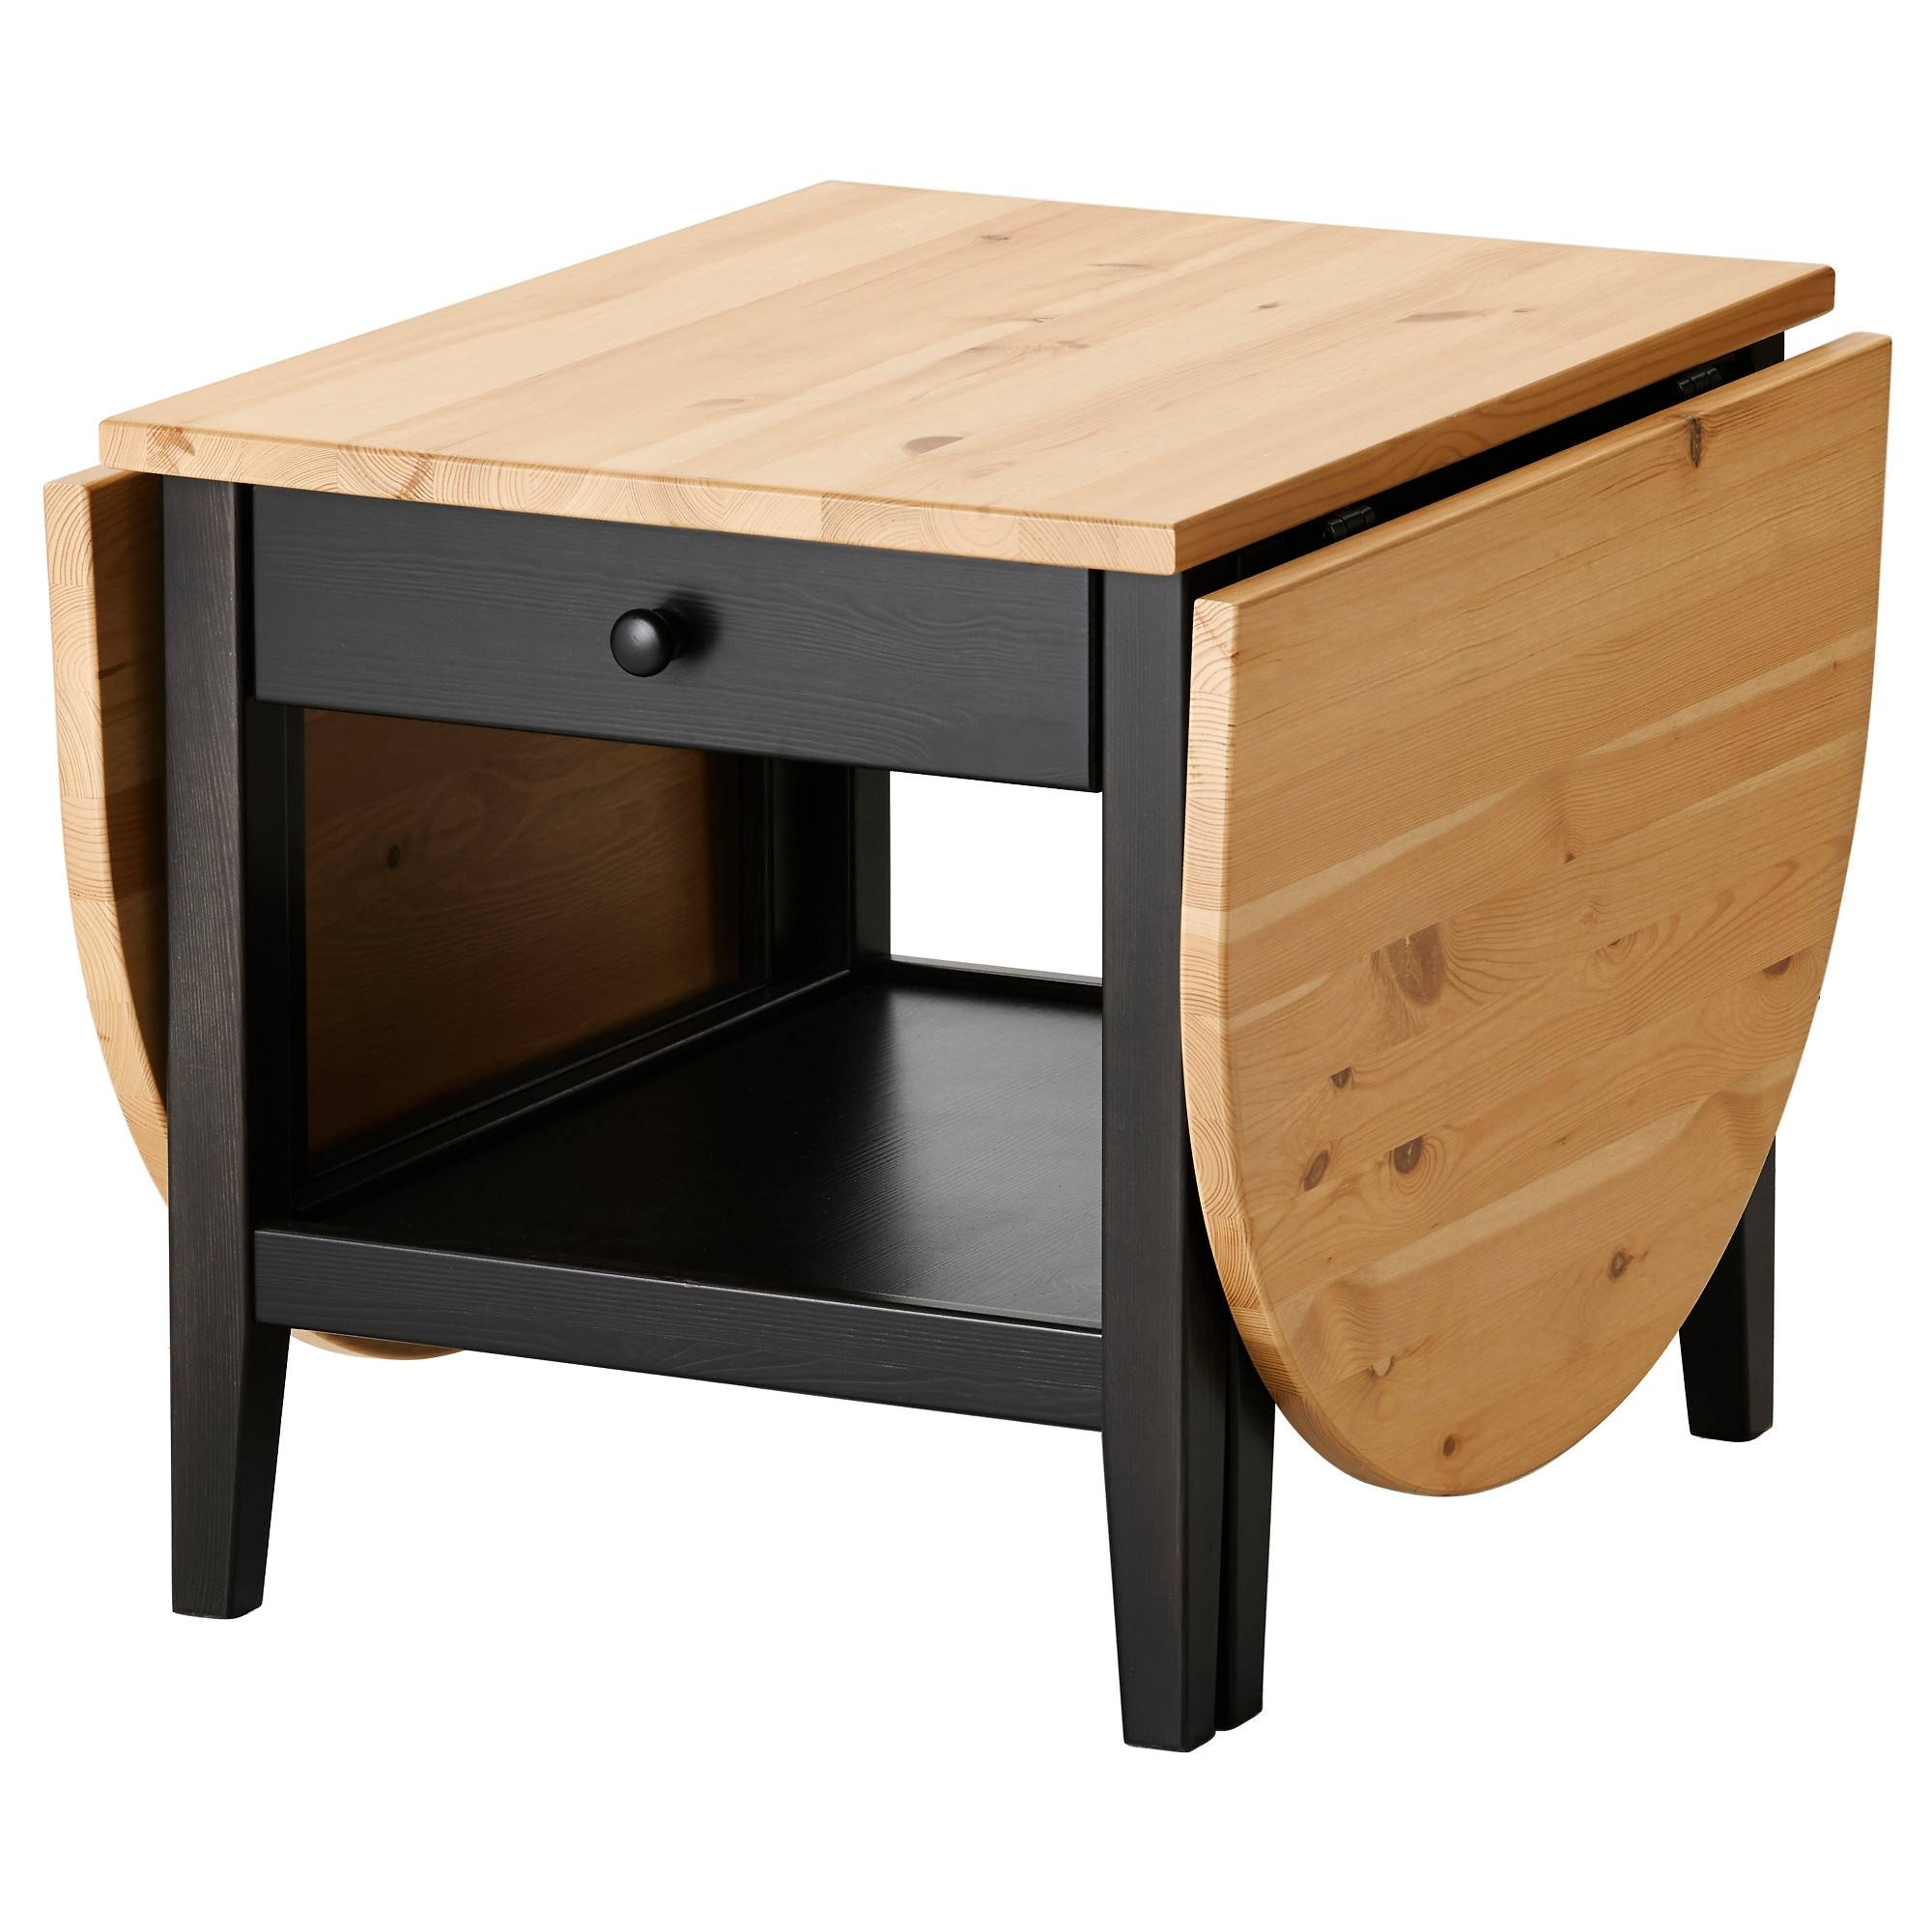 Coffee Tables - Glass & Wooden Coffee Tables - Ikea throughout Black Wood Coffee Tables (Image 18 of 30)